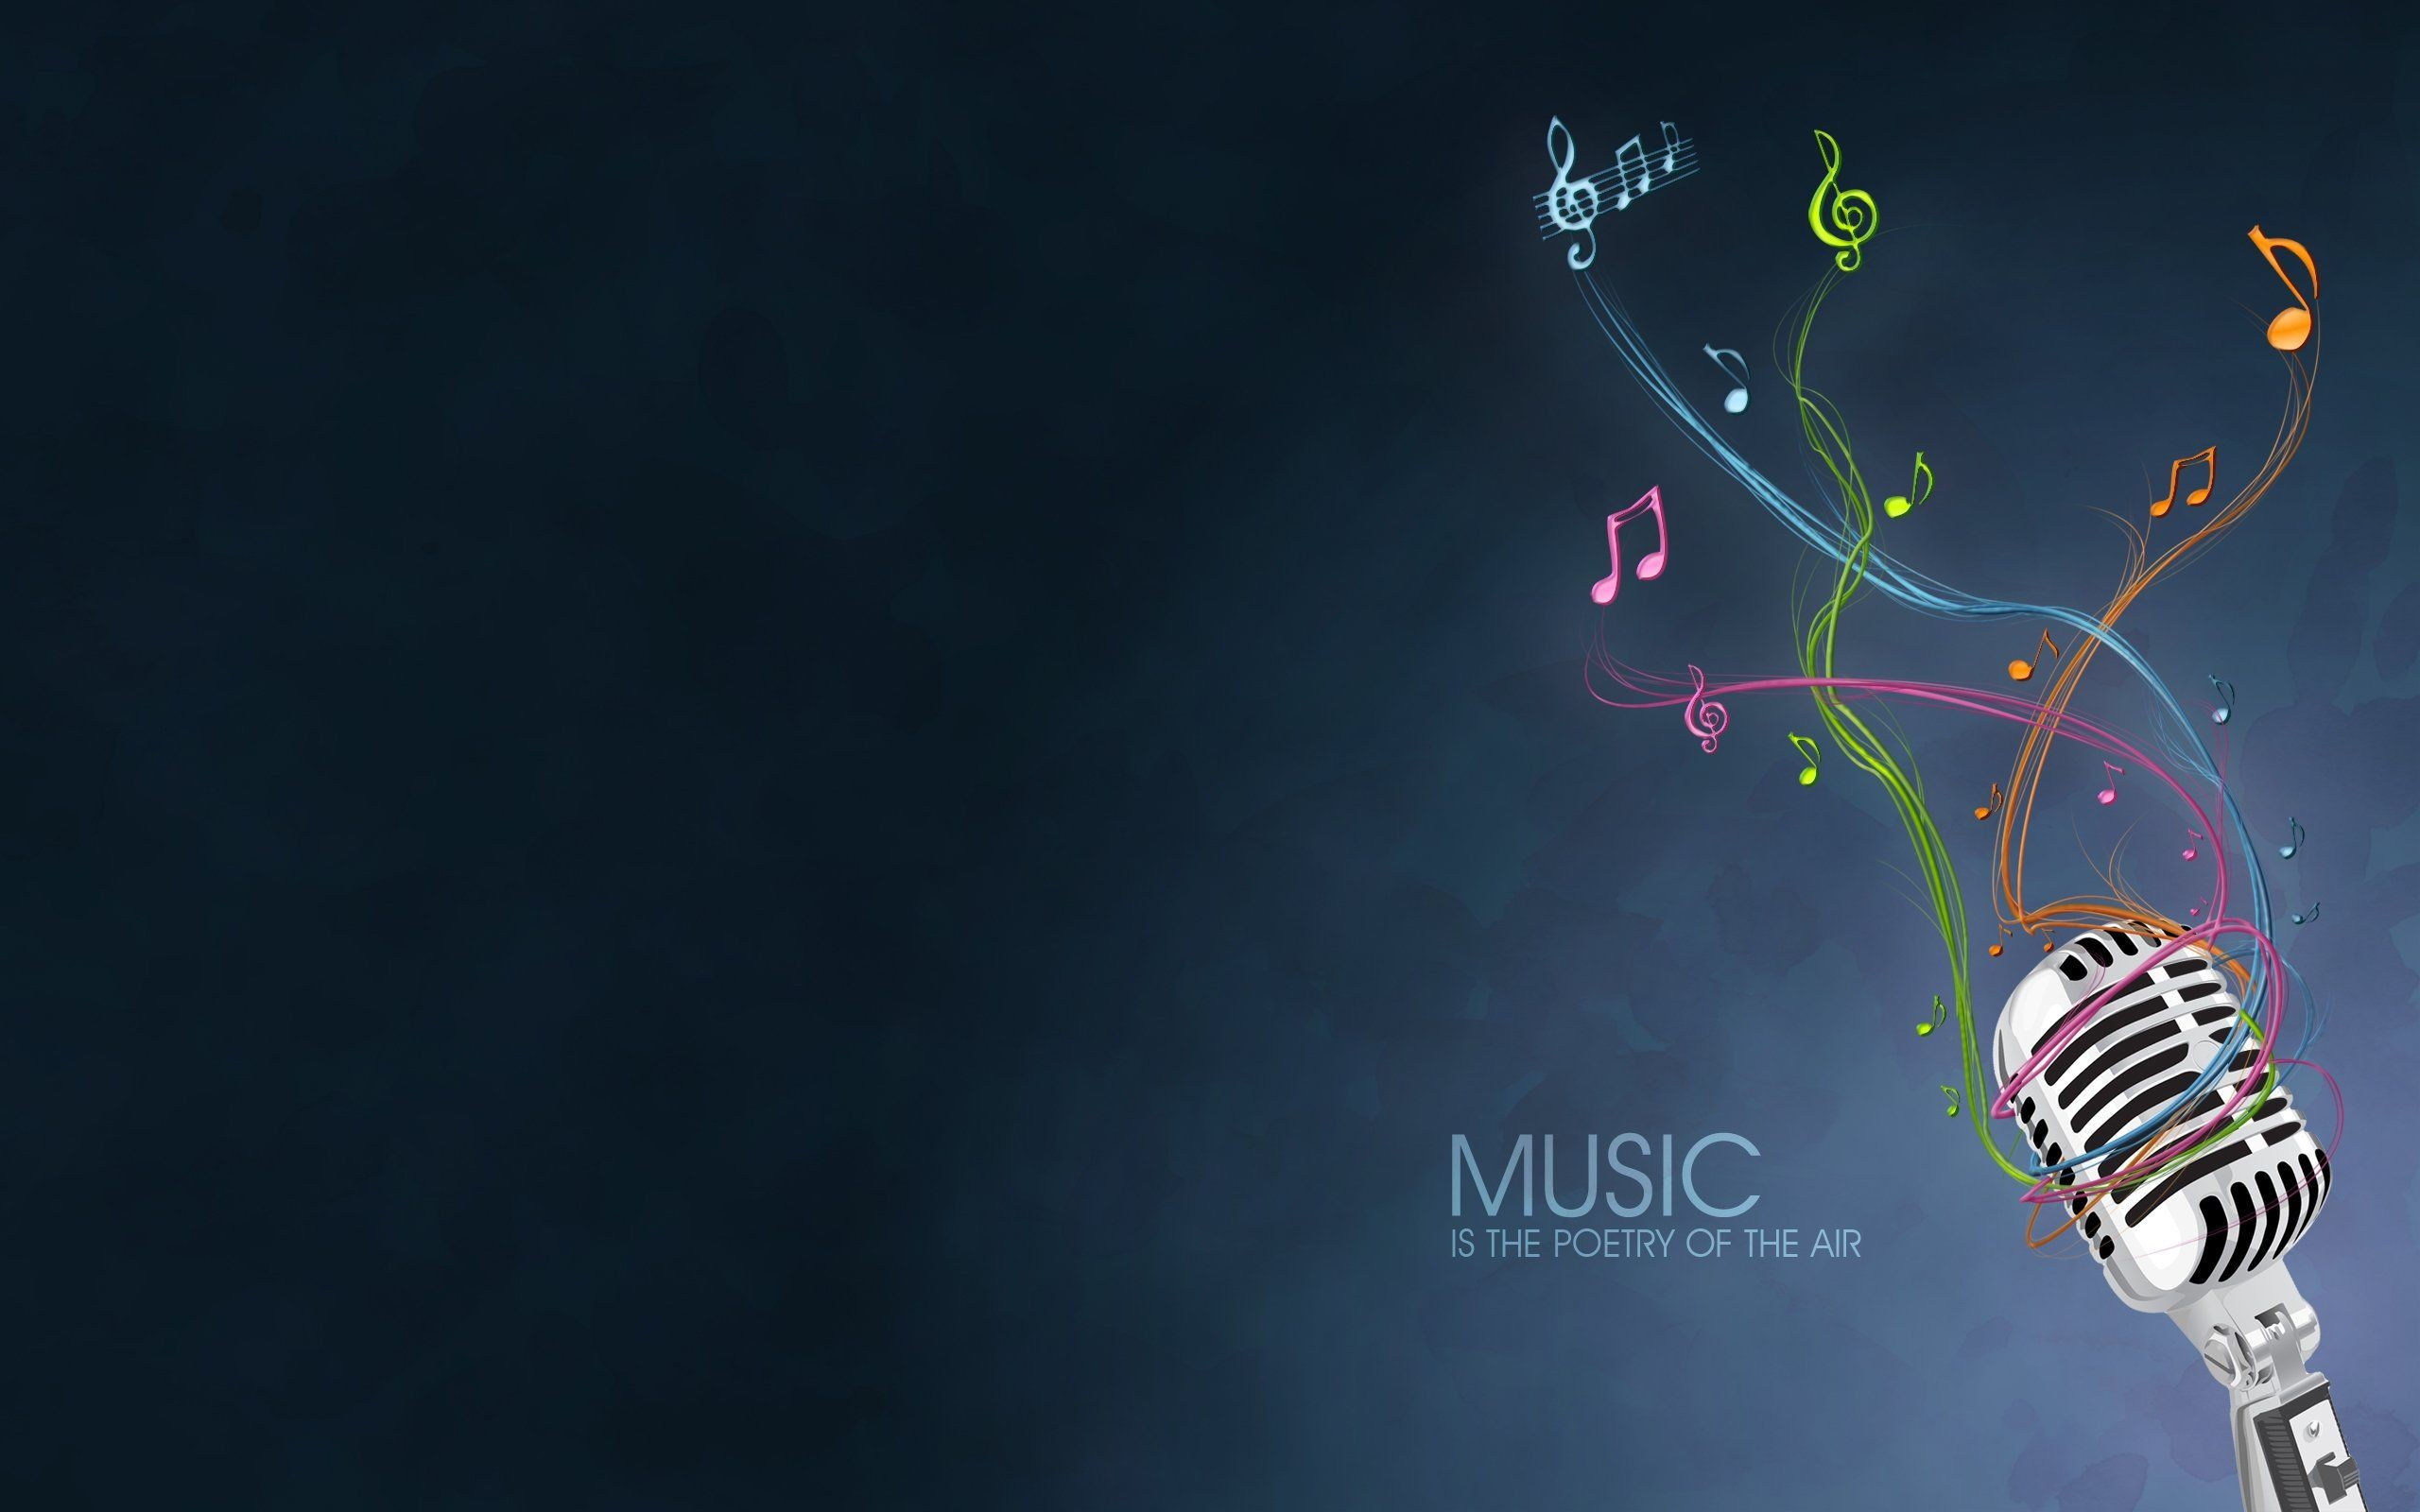 2560x1600 HQ Music Wallpapers Photography Design